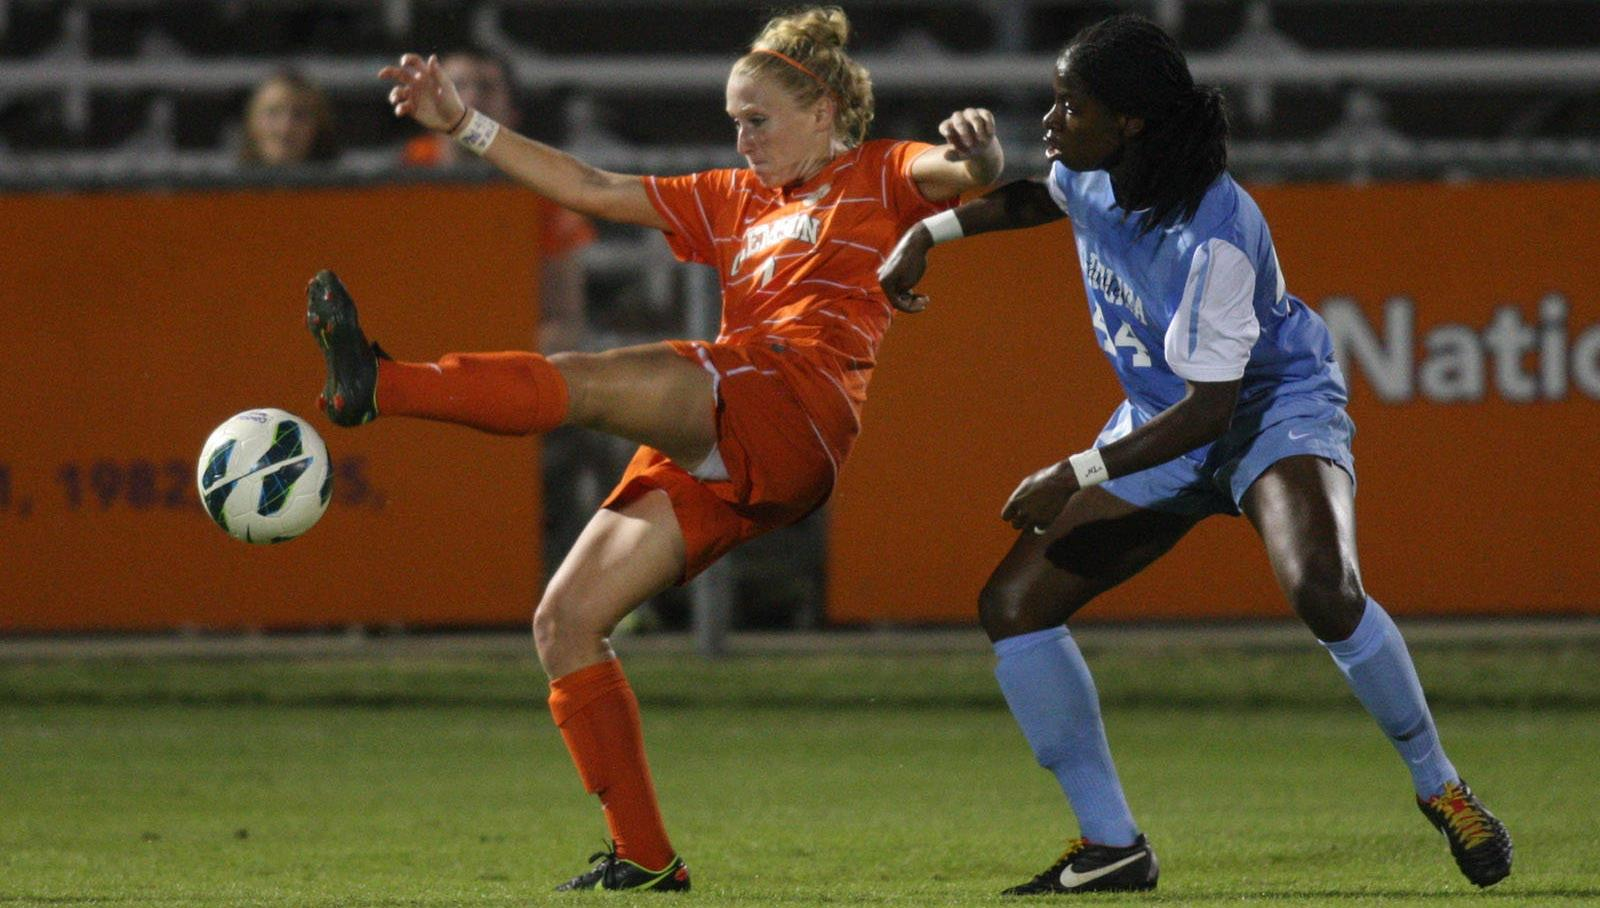 Clemson Women's Soccer Team Falls to #7 North Carolina Friday at Historic Riggs Field